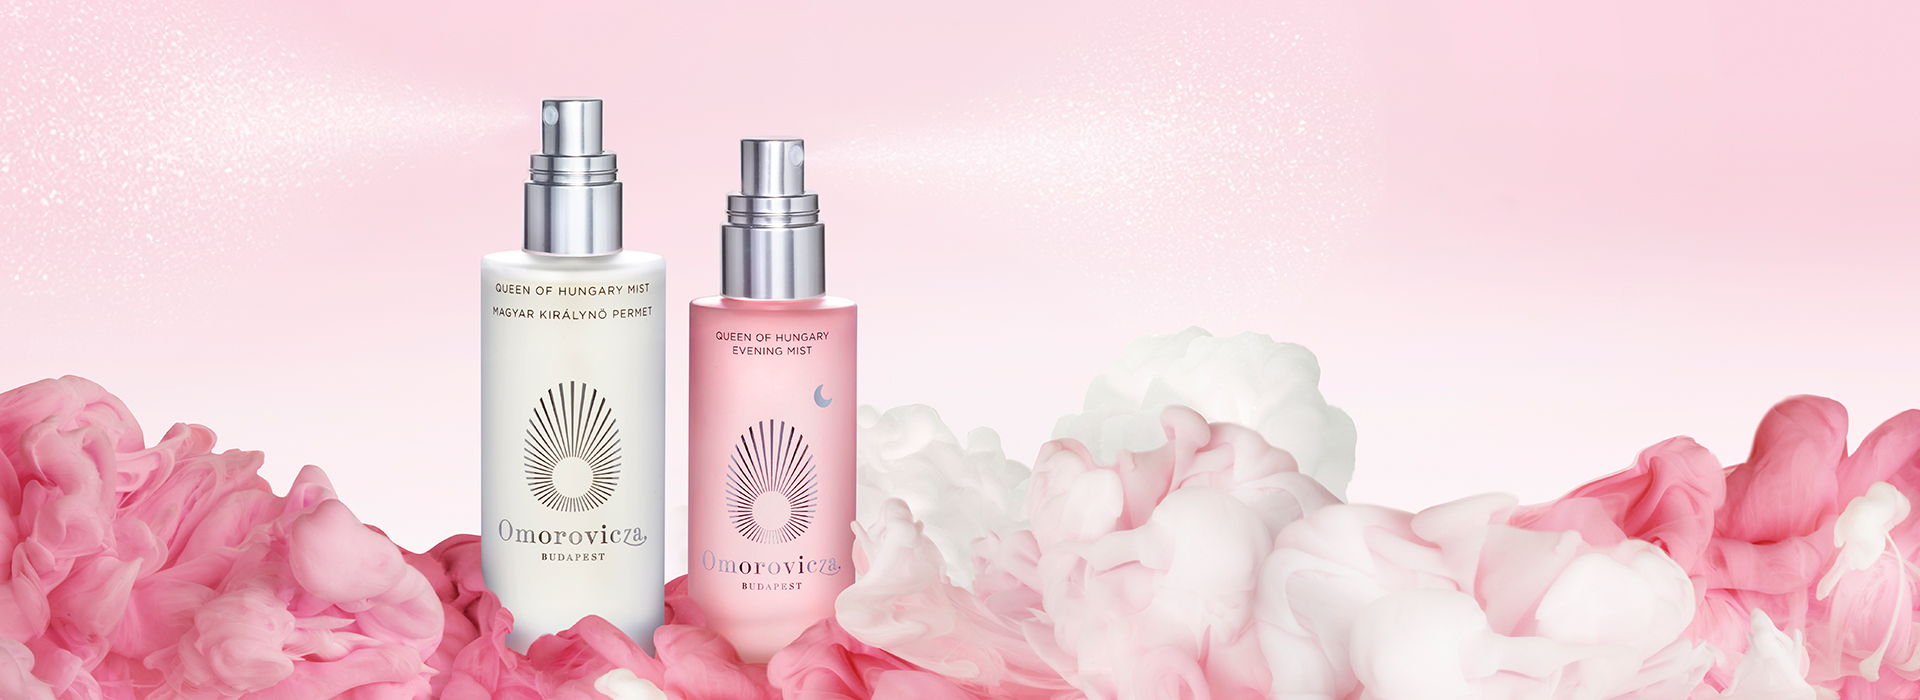 Introducing our Queen of Hungary Evening Mist. Why just sleep, when you could dream? Enhance the restorative quality of sleep for skin with the Queen of Hungary Evening Mist: a luxurious pre-pillow facial mist combining repair-enhancing actives with calming lavender extract, for an indulgent veil of beauty sleep.